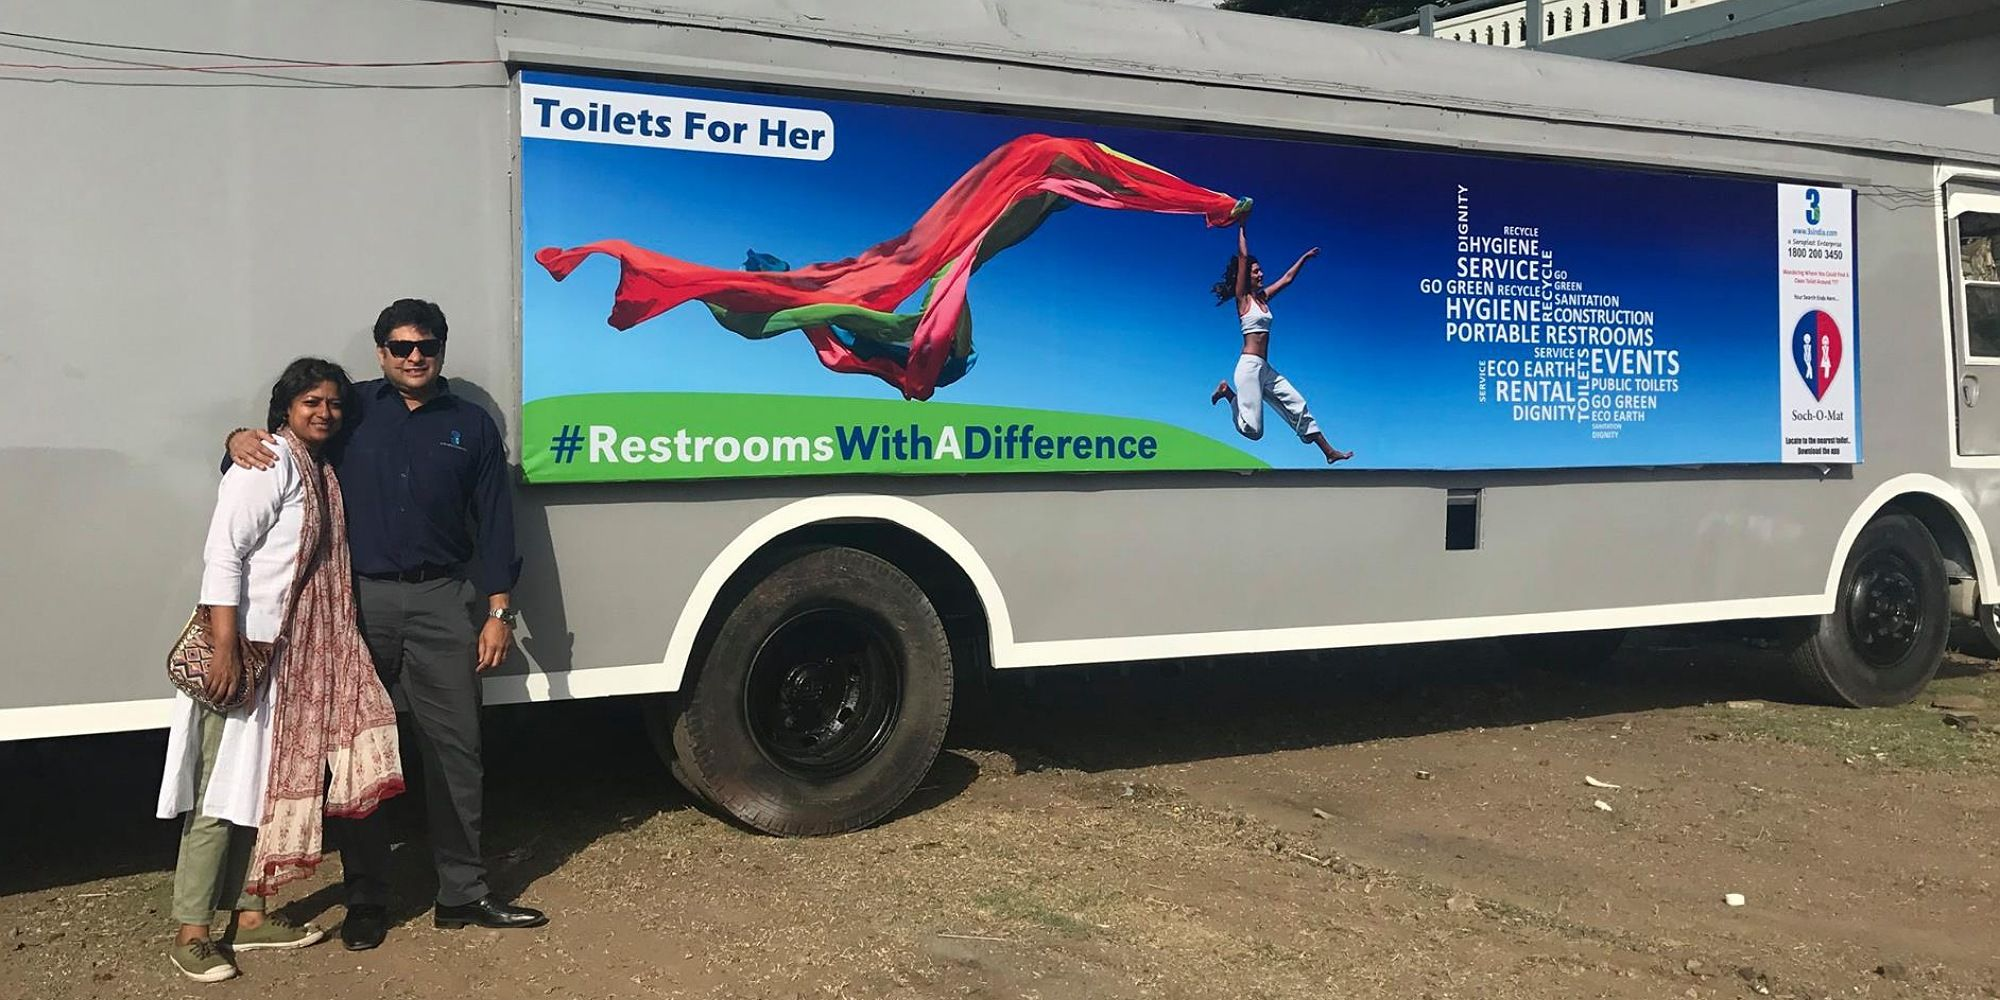 How two Pune based entrepreneurs turned old buses into fully functioning bus toilets for women